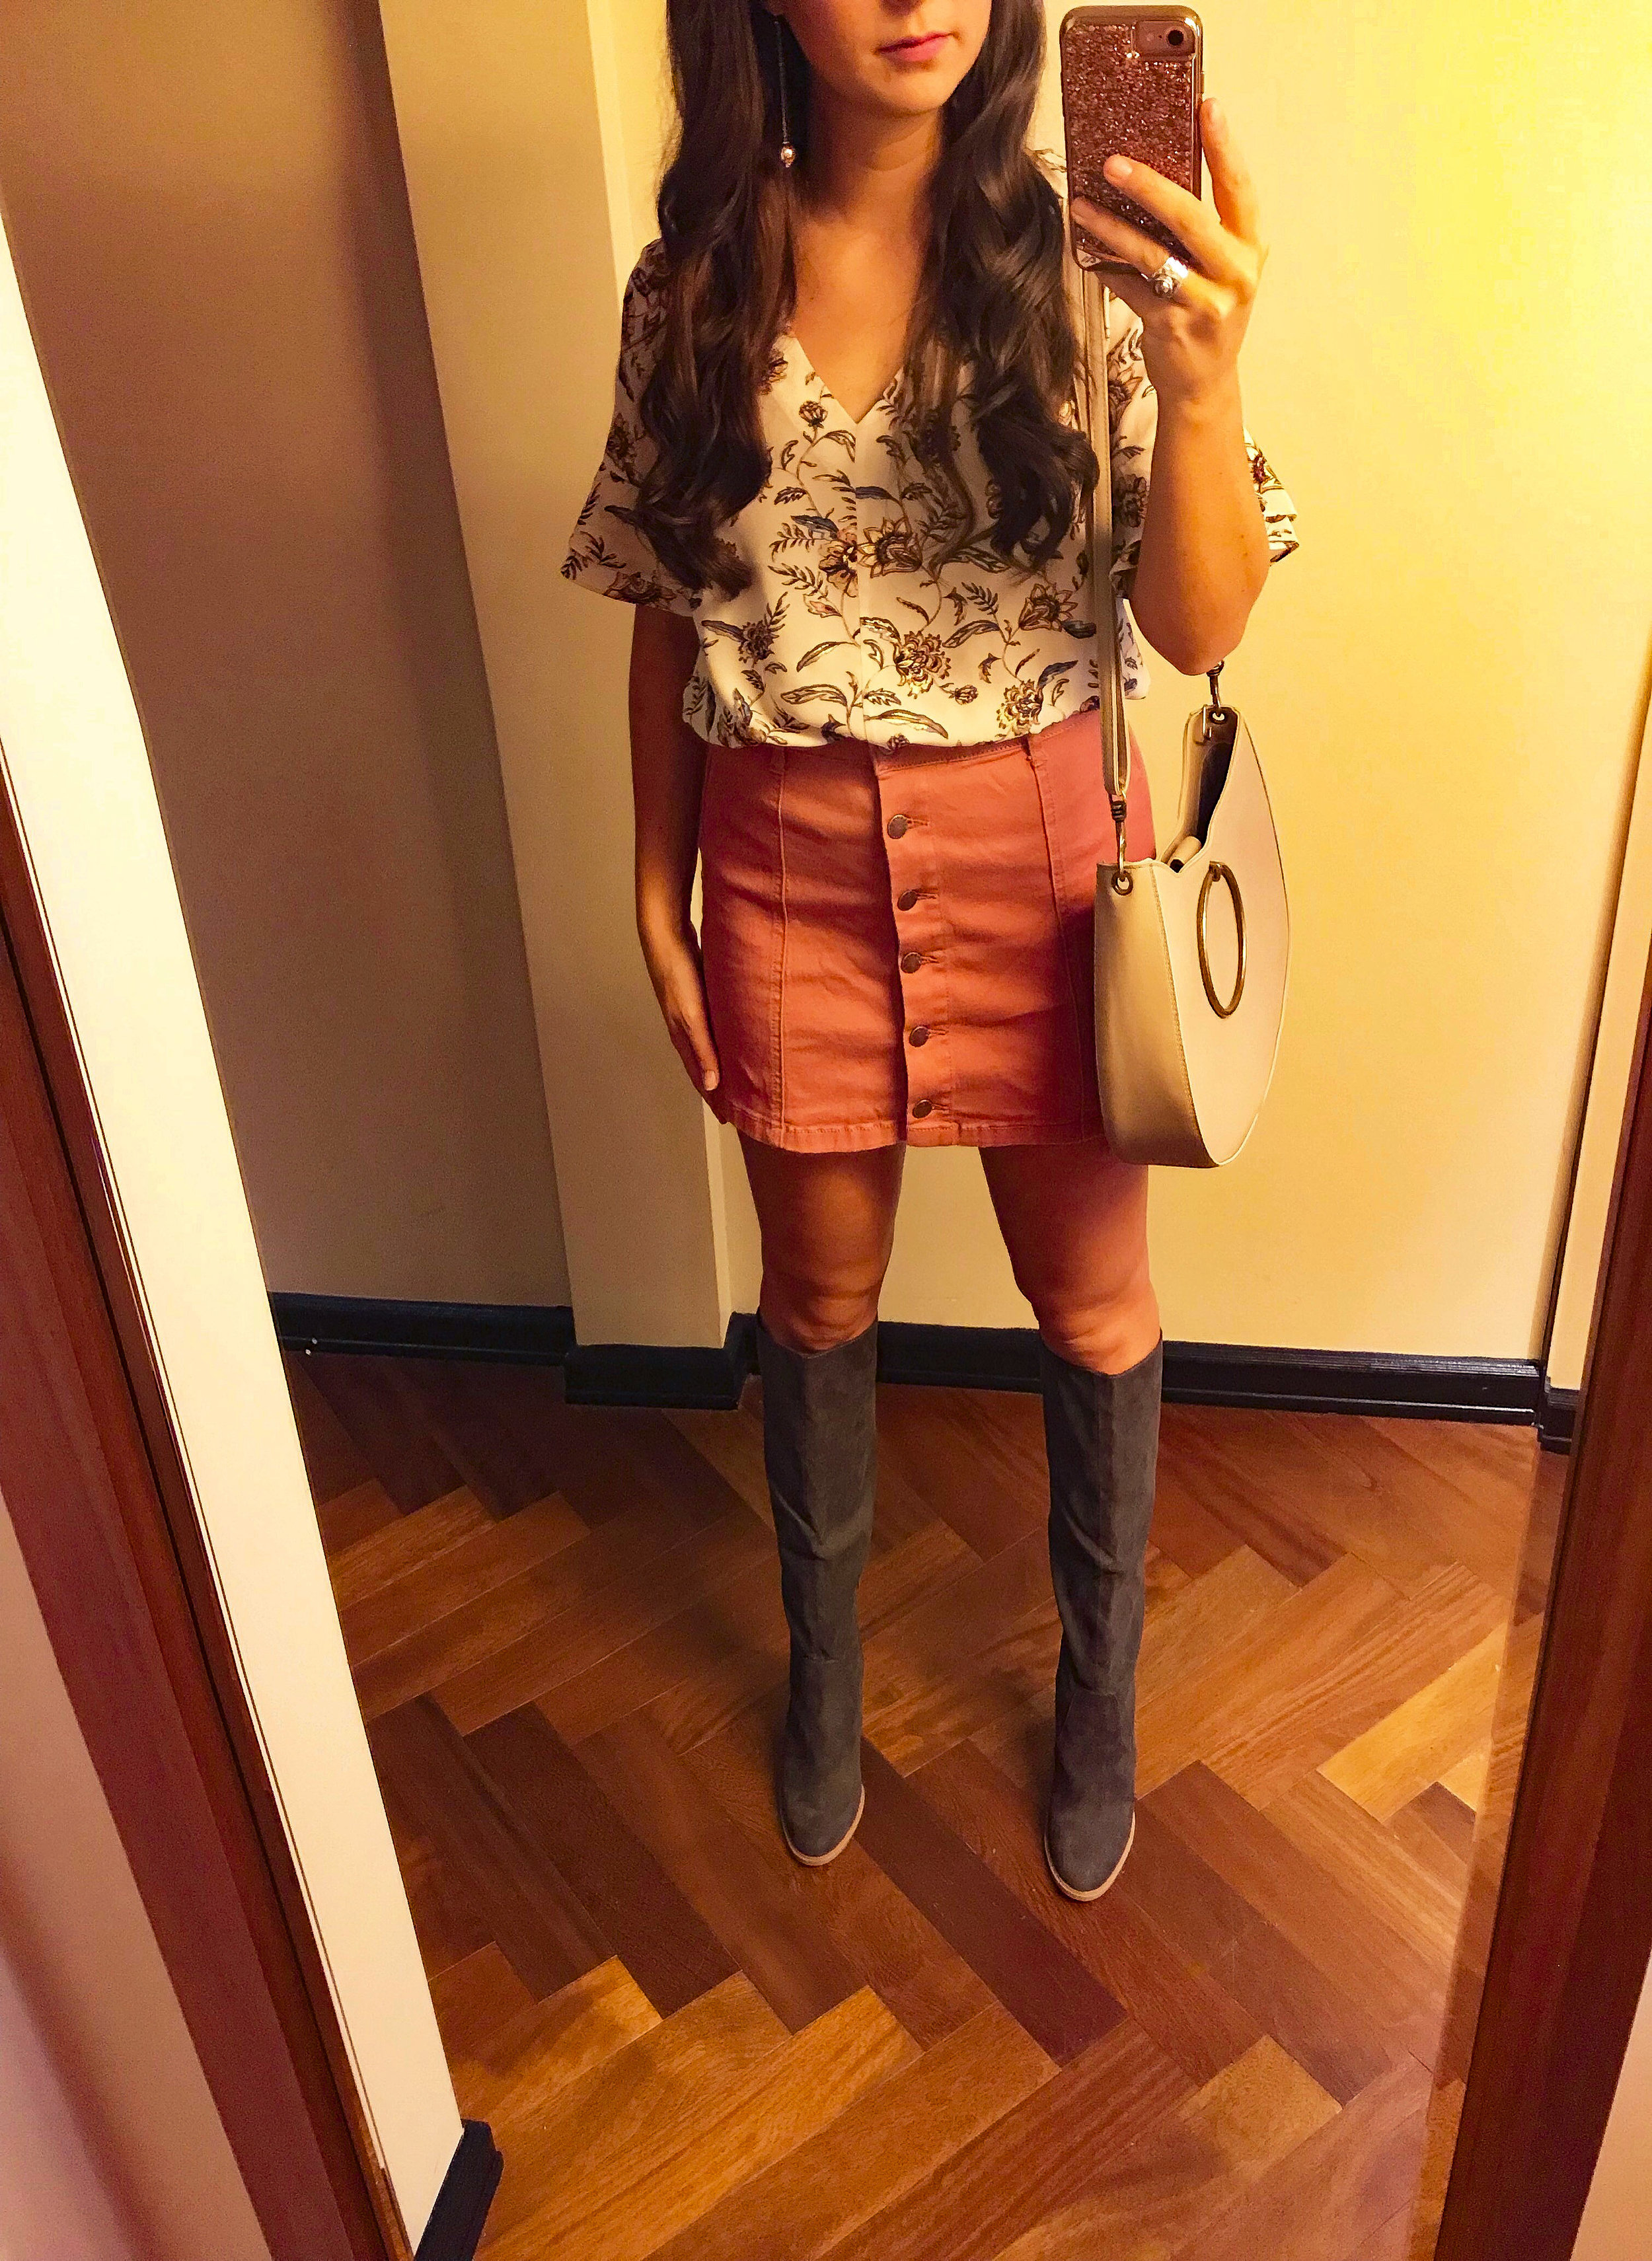 OOTD - Occasion: NYC - brunch at NOMO, sightseeing, lunch at Cull & PistolNovember 2017Outfit details